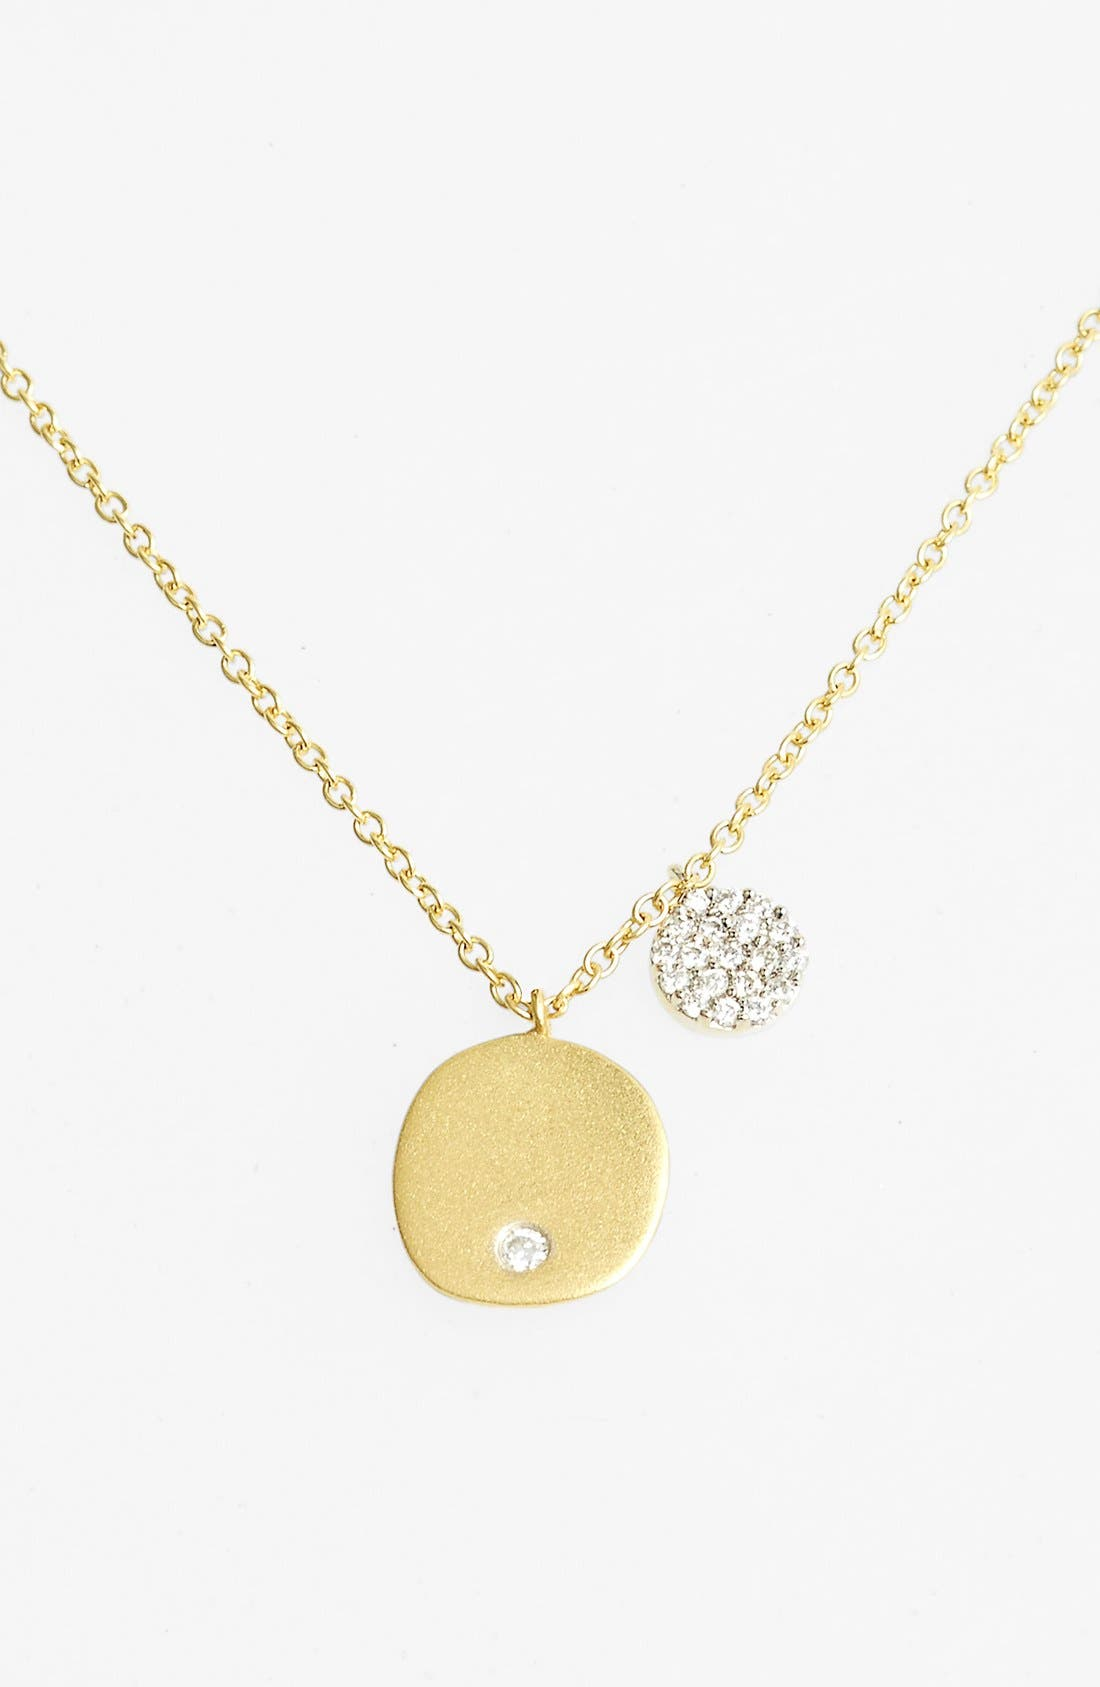 Charmed Diamond Pendant Necklace,                             Main thumbnail 1, color,                             Yellow Gold